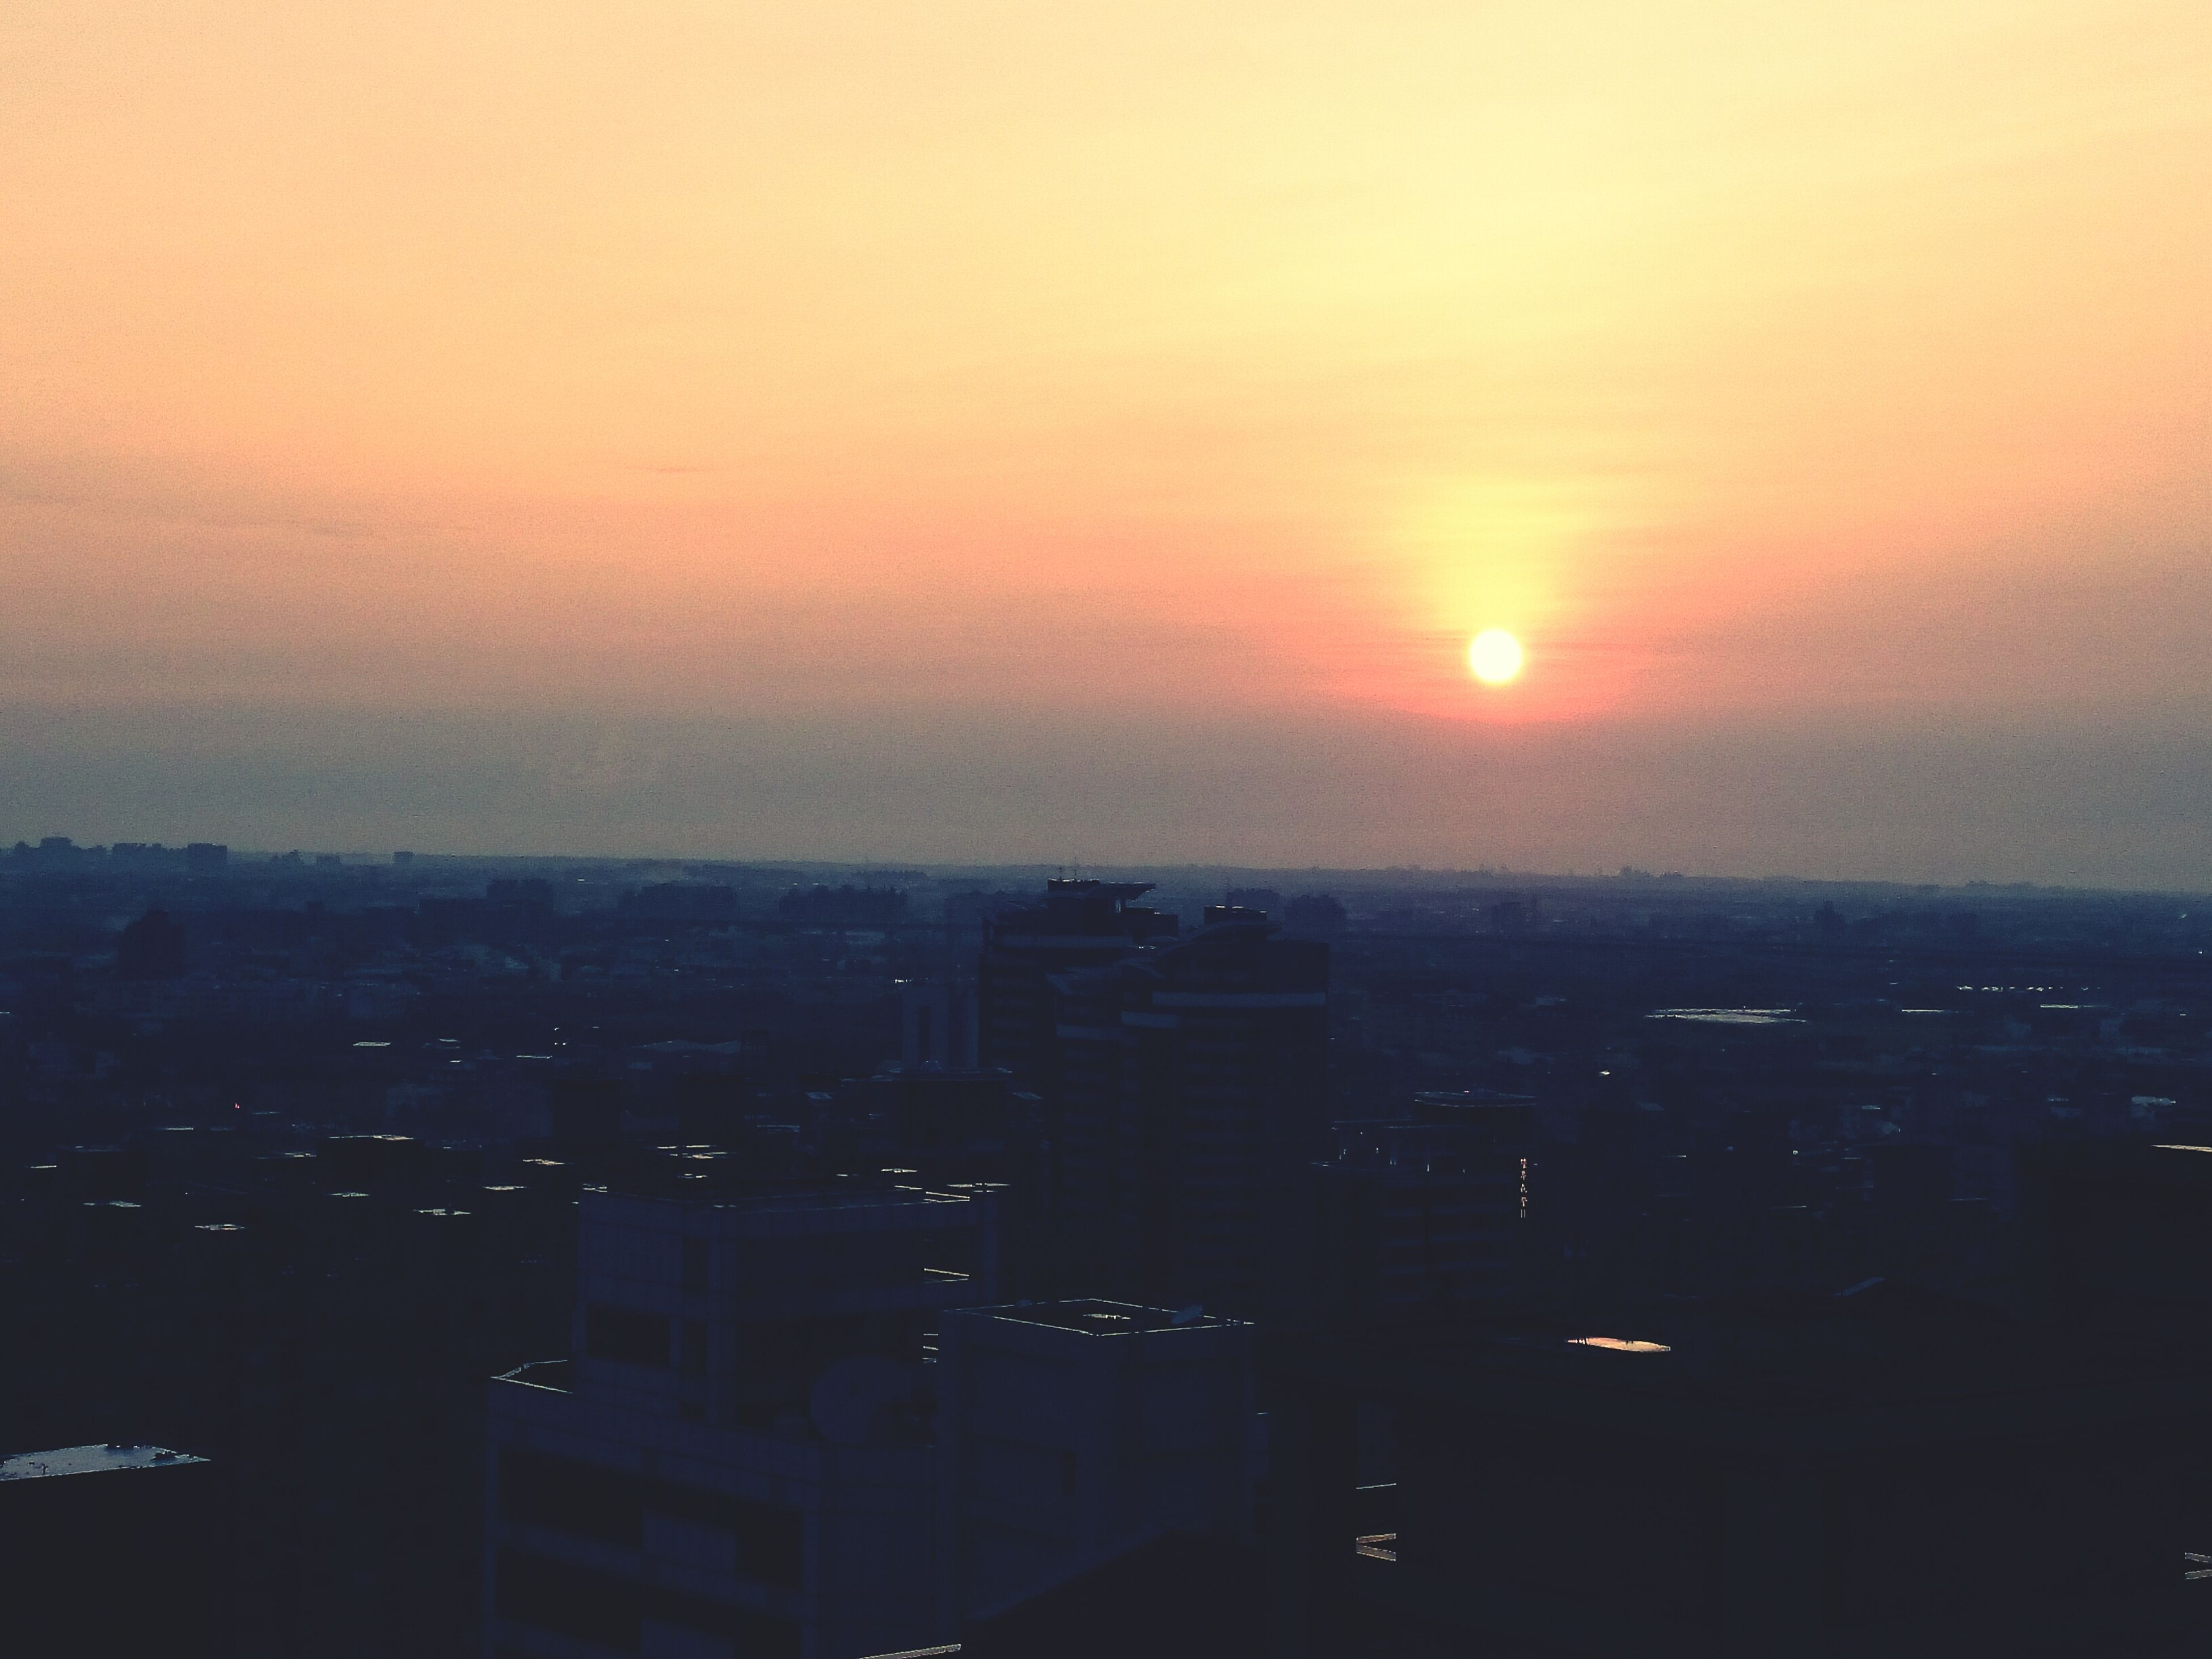 sunset, cityscape, orange color, building exterior, city, architecture, built structure, sun, crowded, sky, scenics, silhouette, high angle view, copy space, residential district, residential building, residential structure, beauty in nature, outdoors, no people